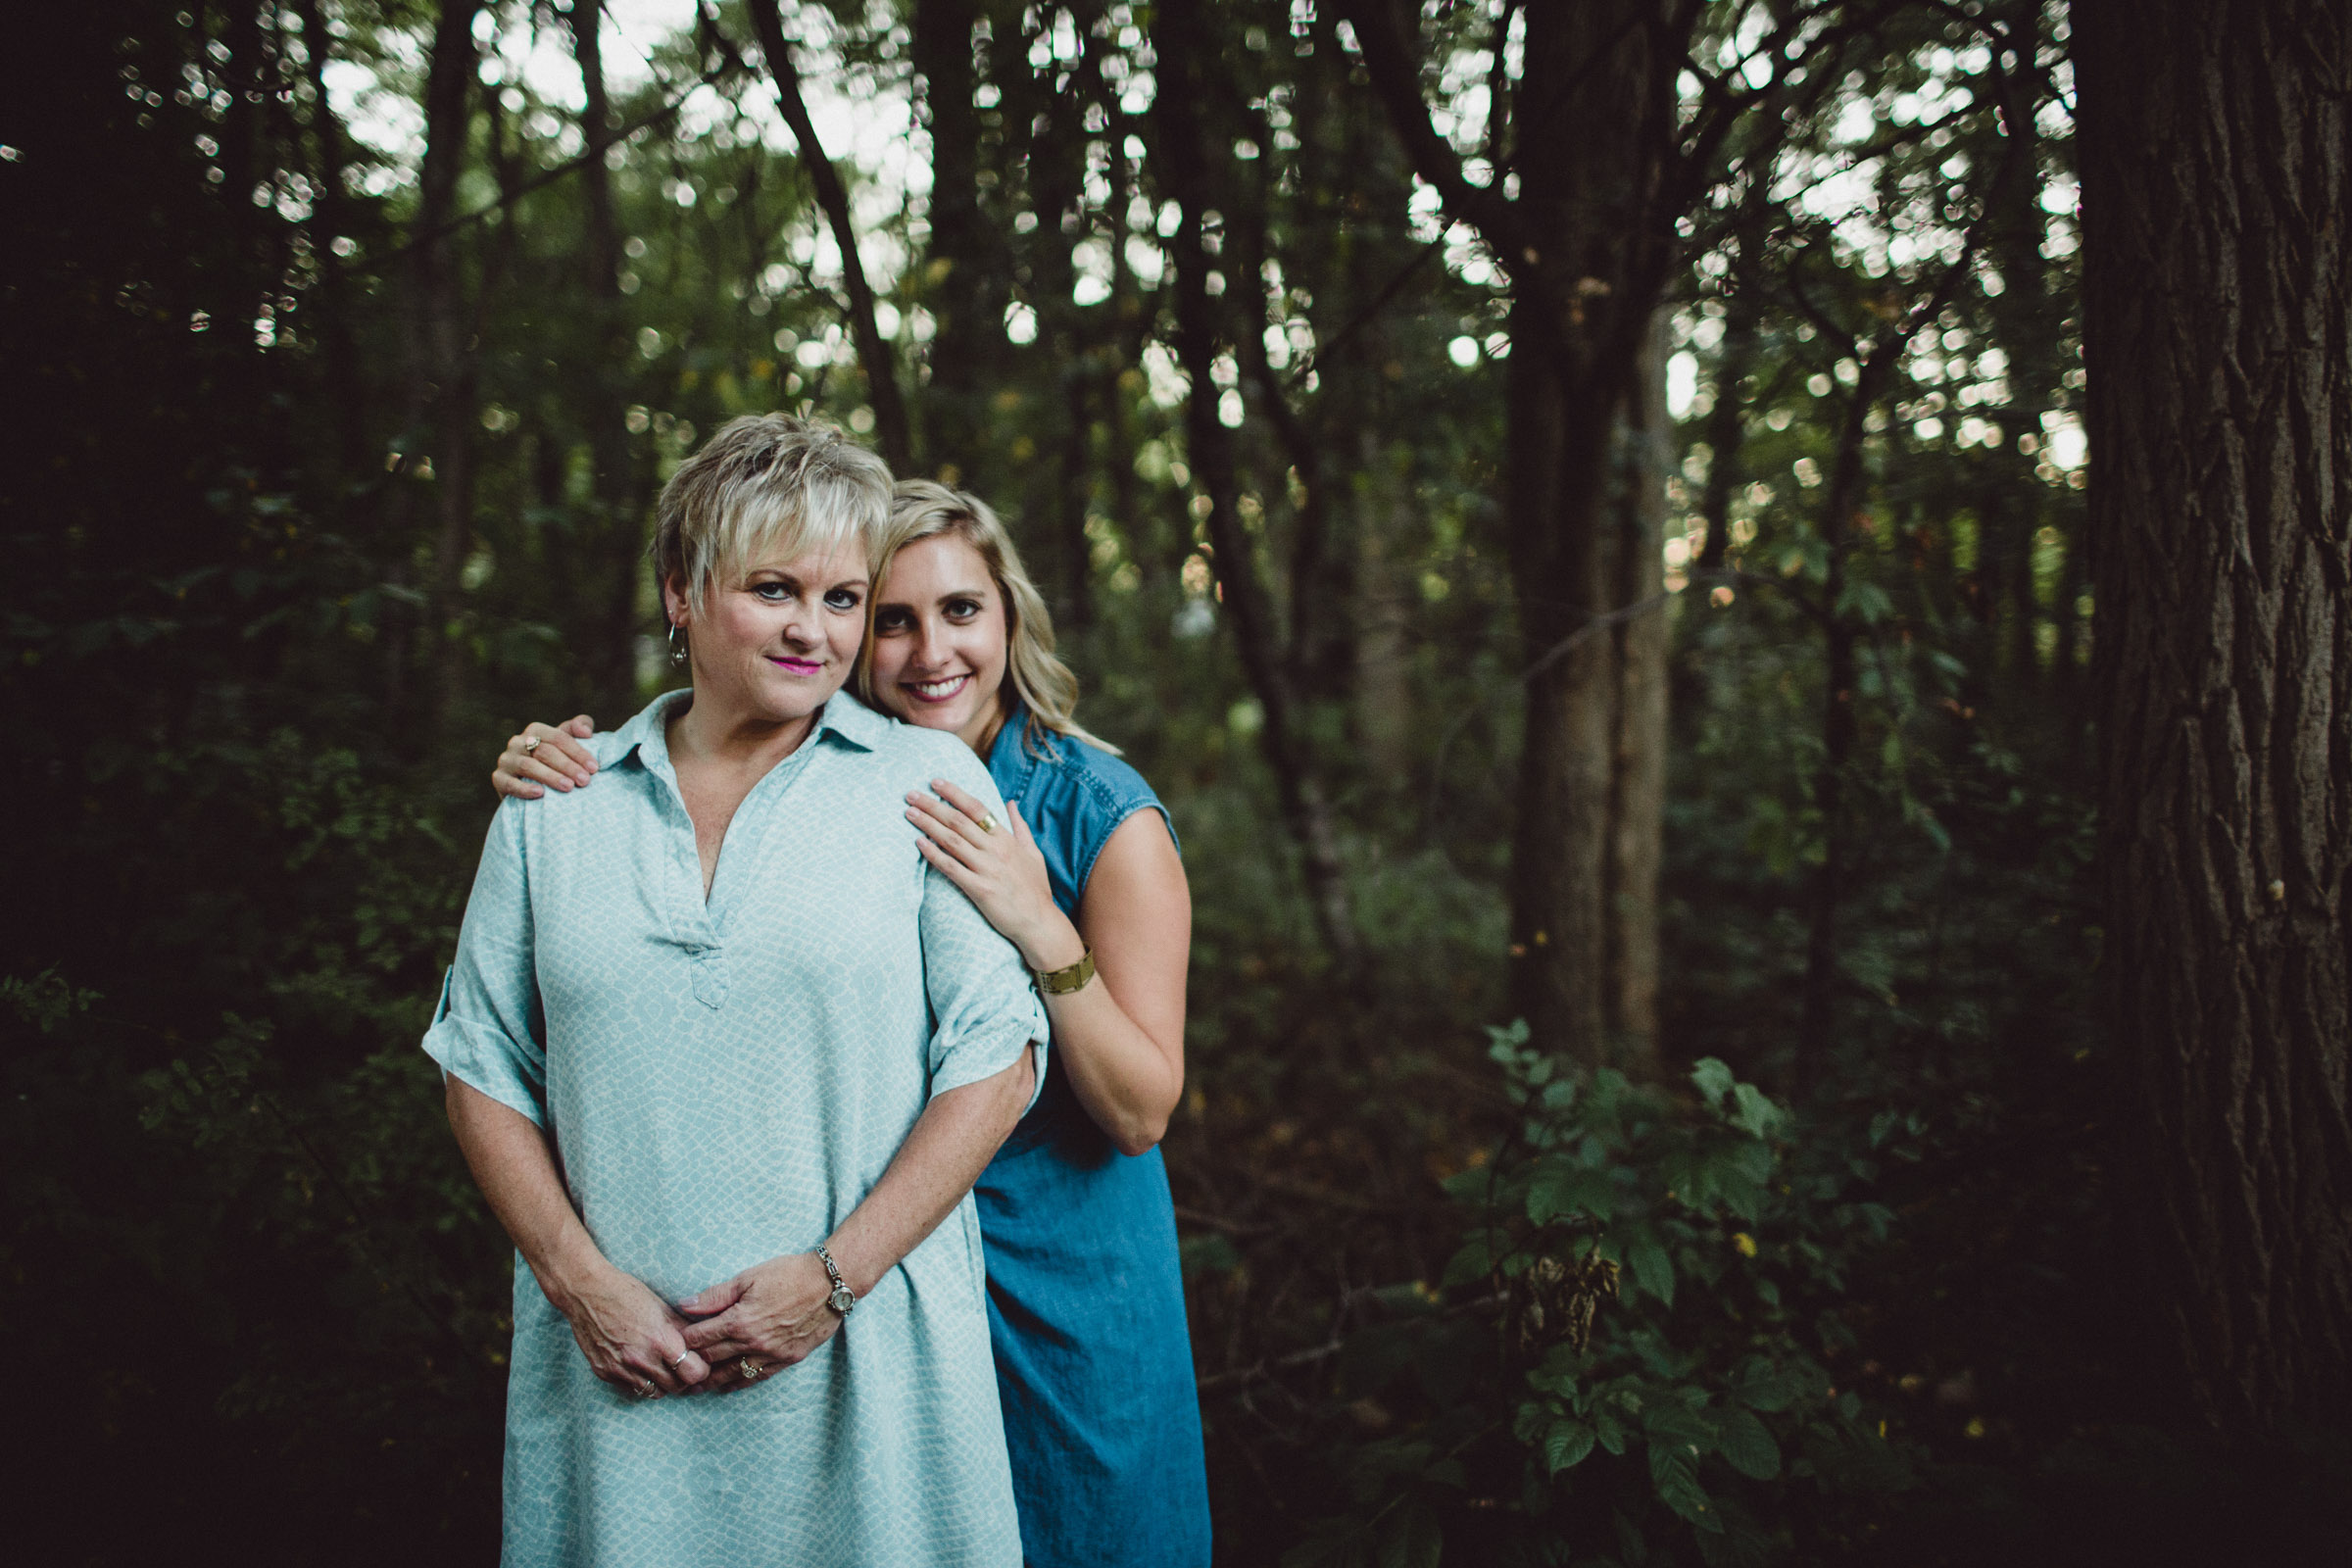 mother and daughter portrait in woods